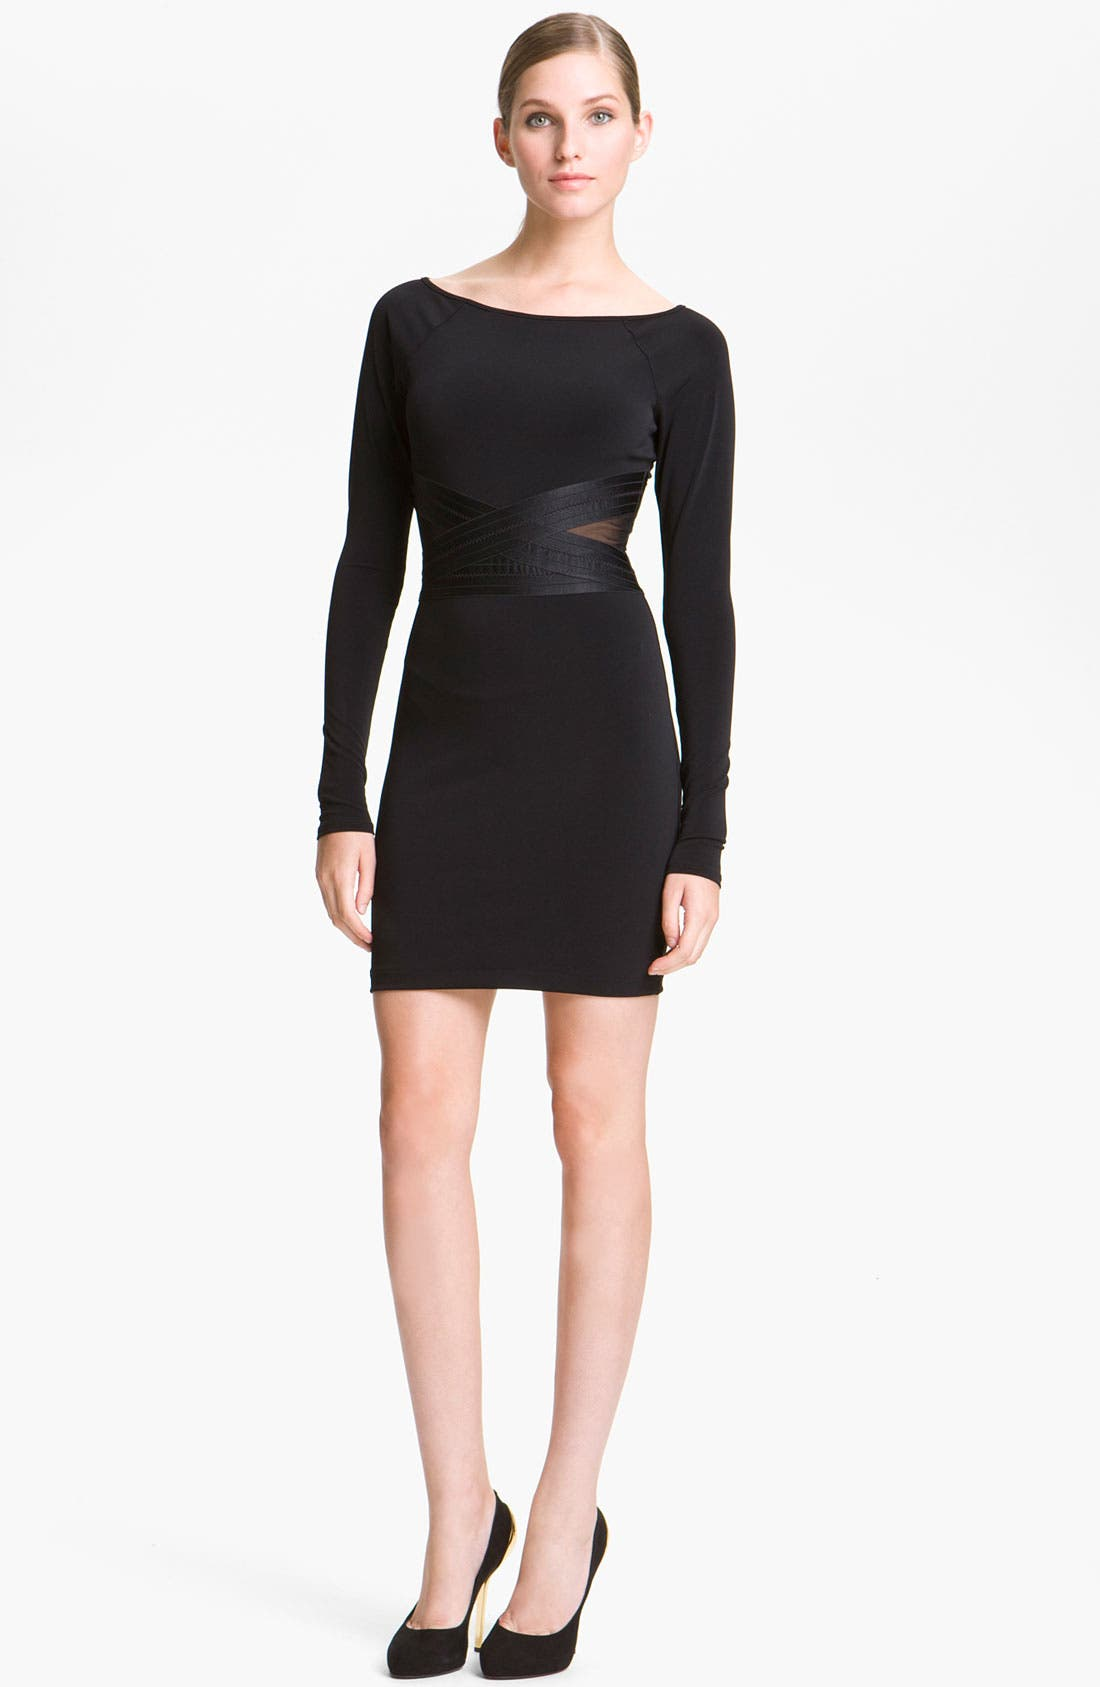 Main Image - Elizabeth and James 'Alexa' Stretch Knit Dress